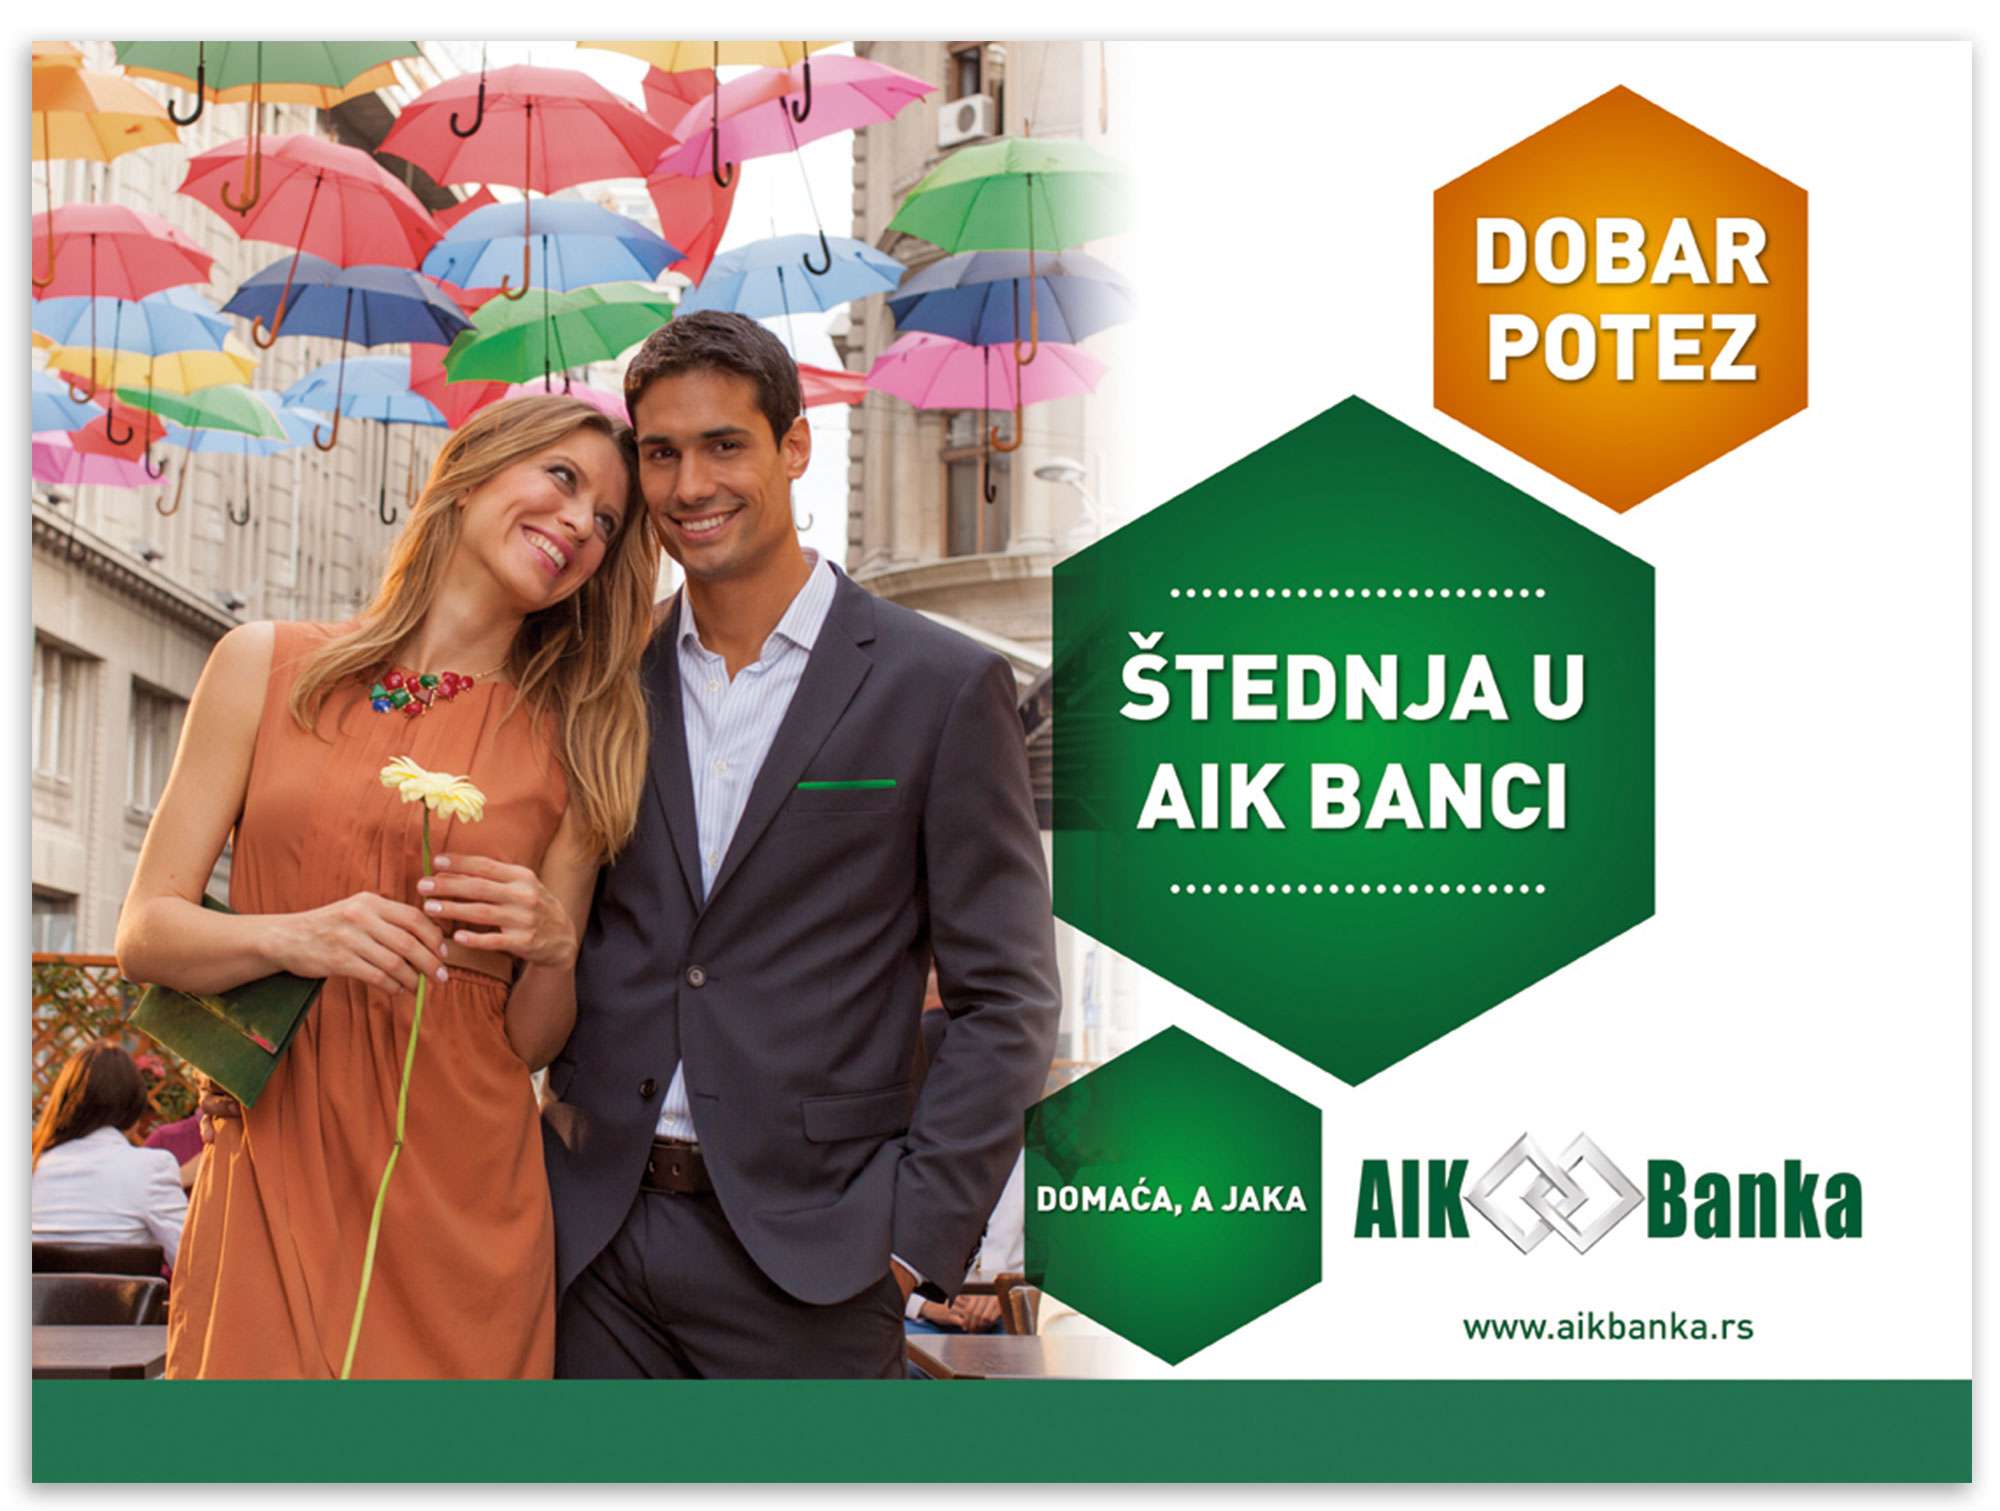 aik banka billboard 6